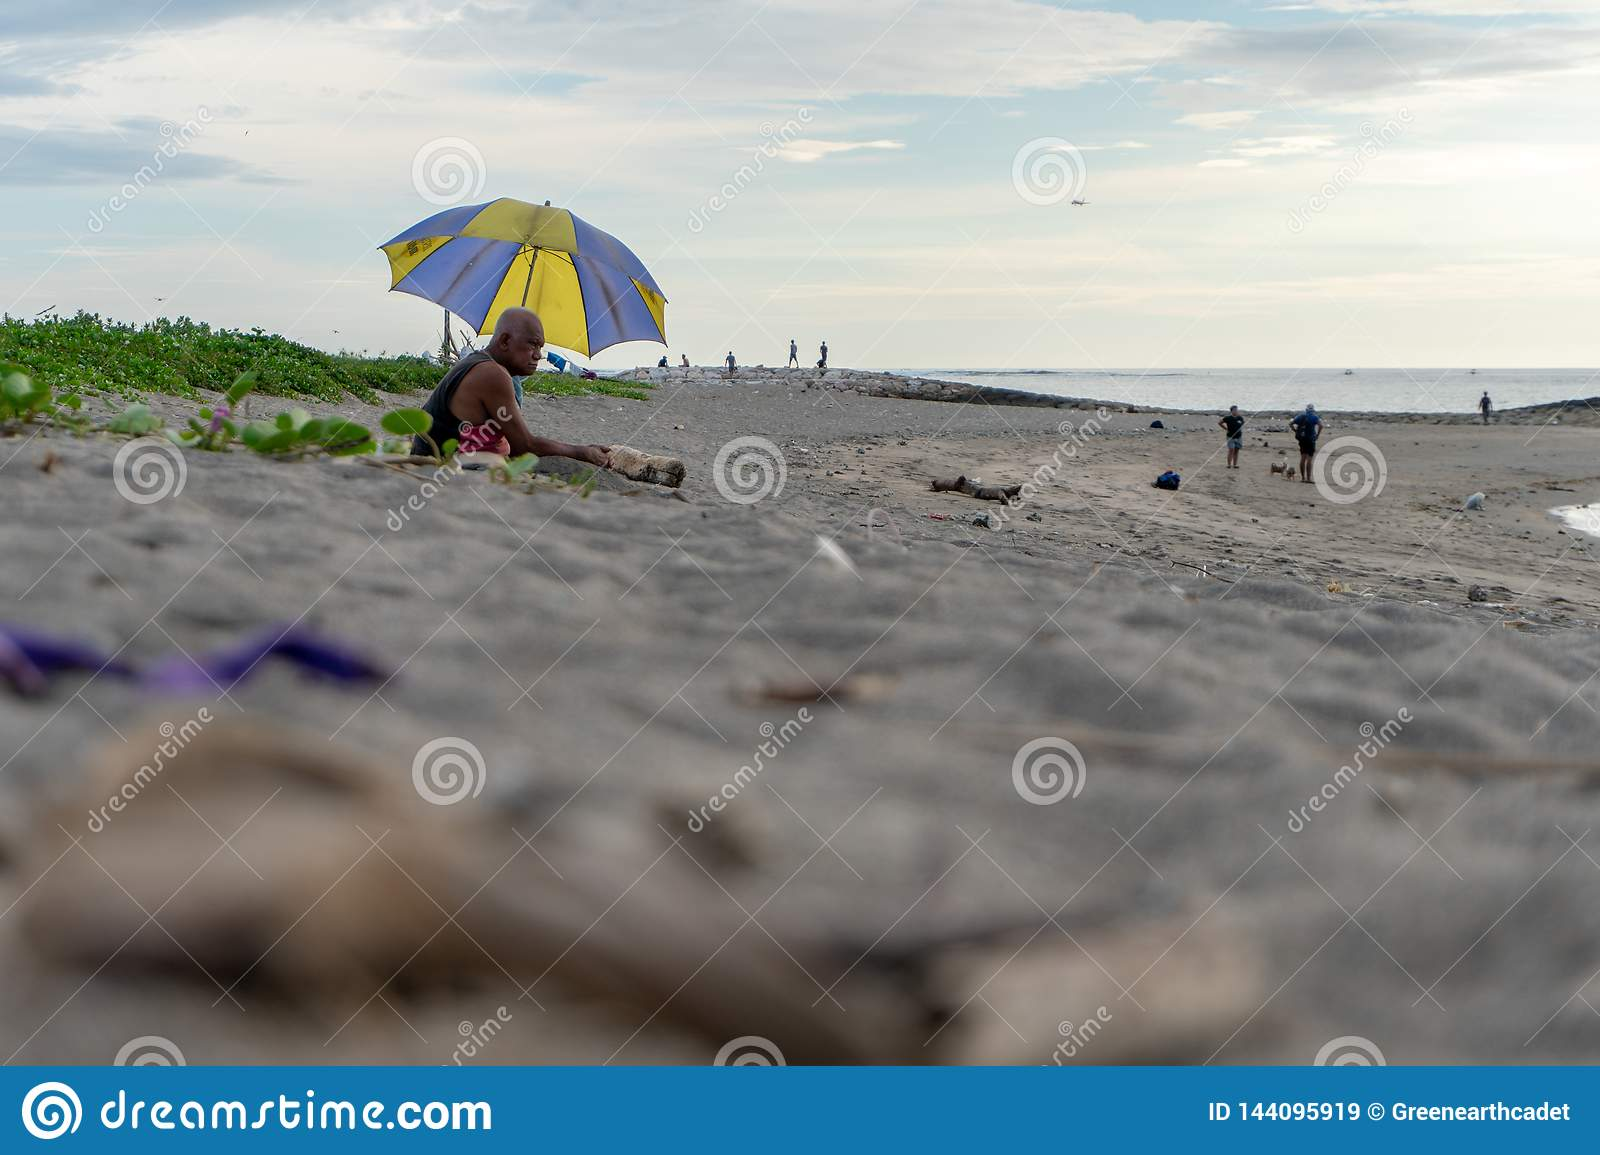 BADUNG,BALI/INDONESIA-APRIL 02 2019: Old man sits on the sand and enjoy sunbathing